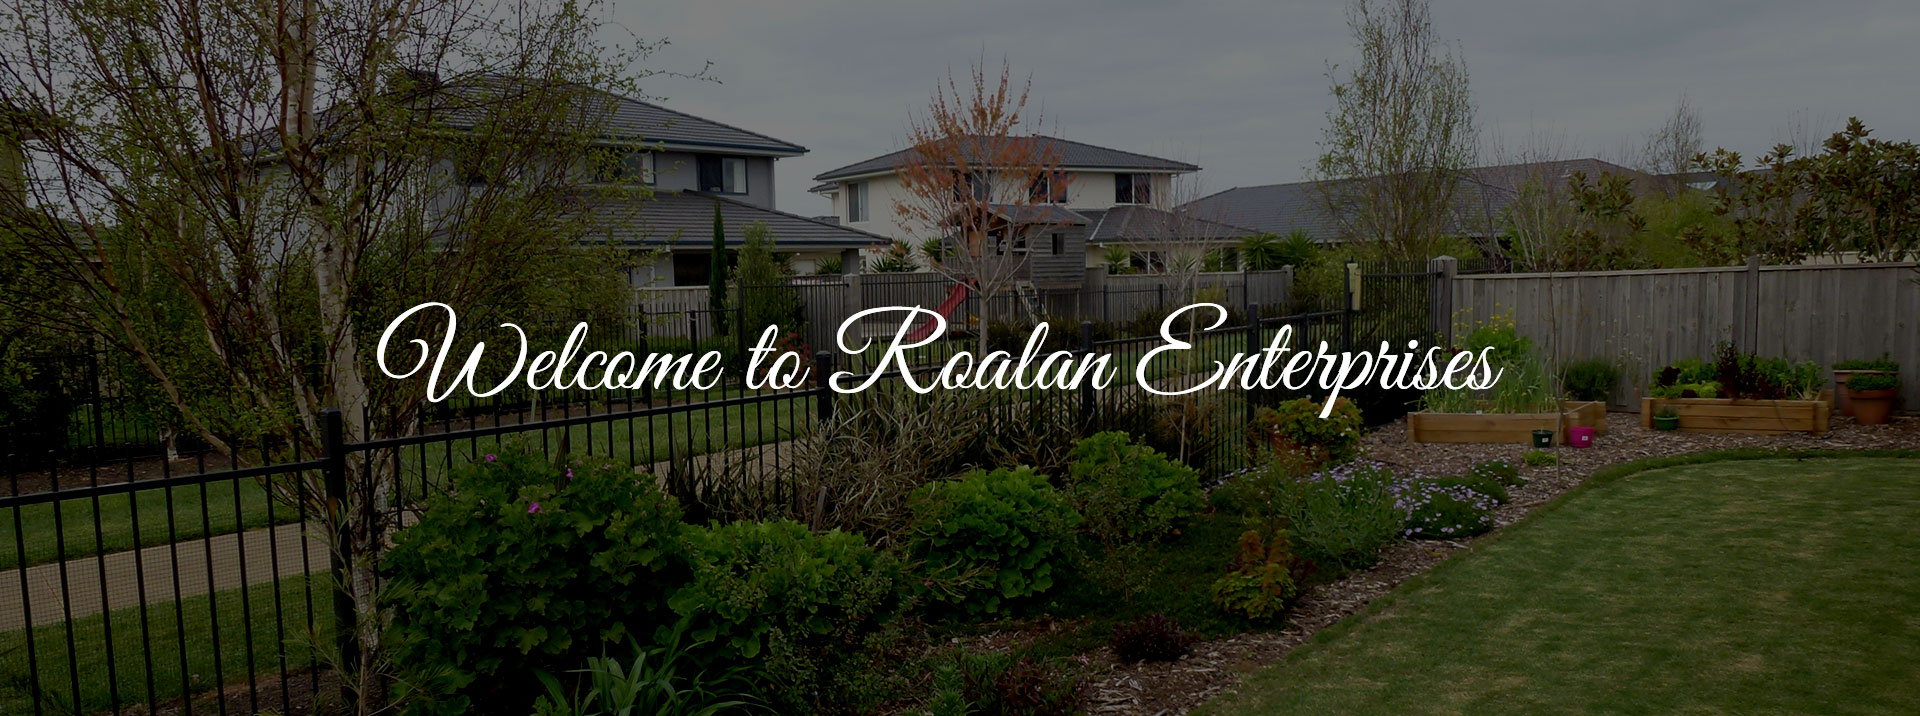 Roalan Enterprises Banner